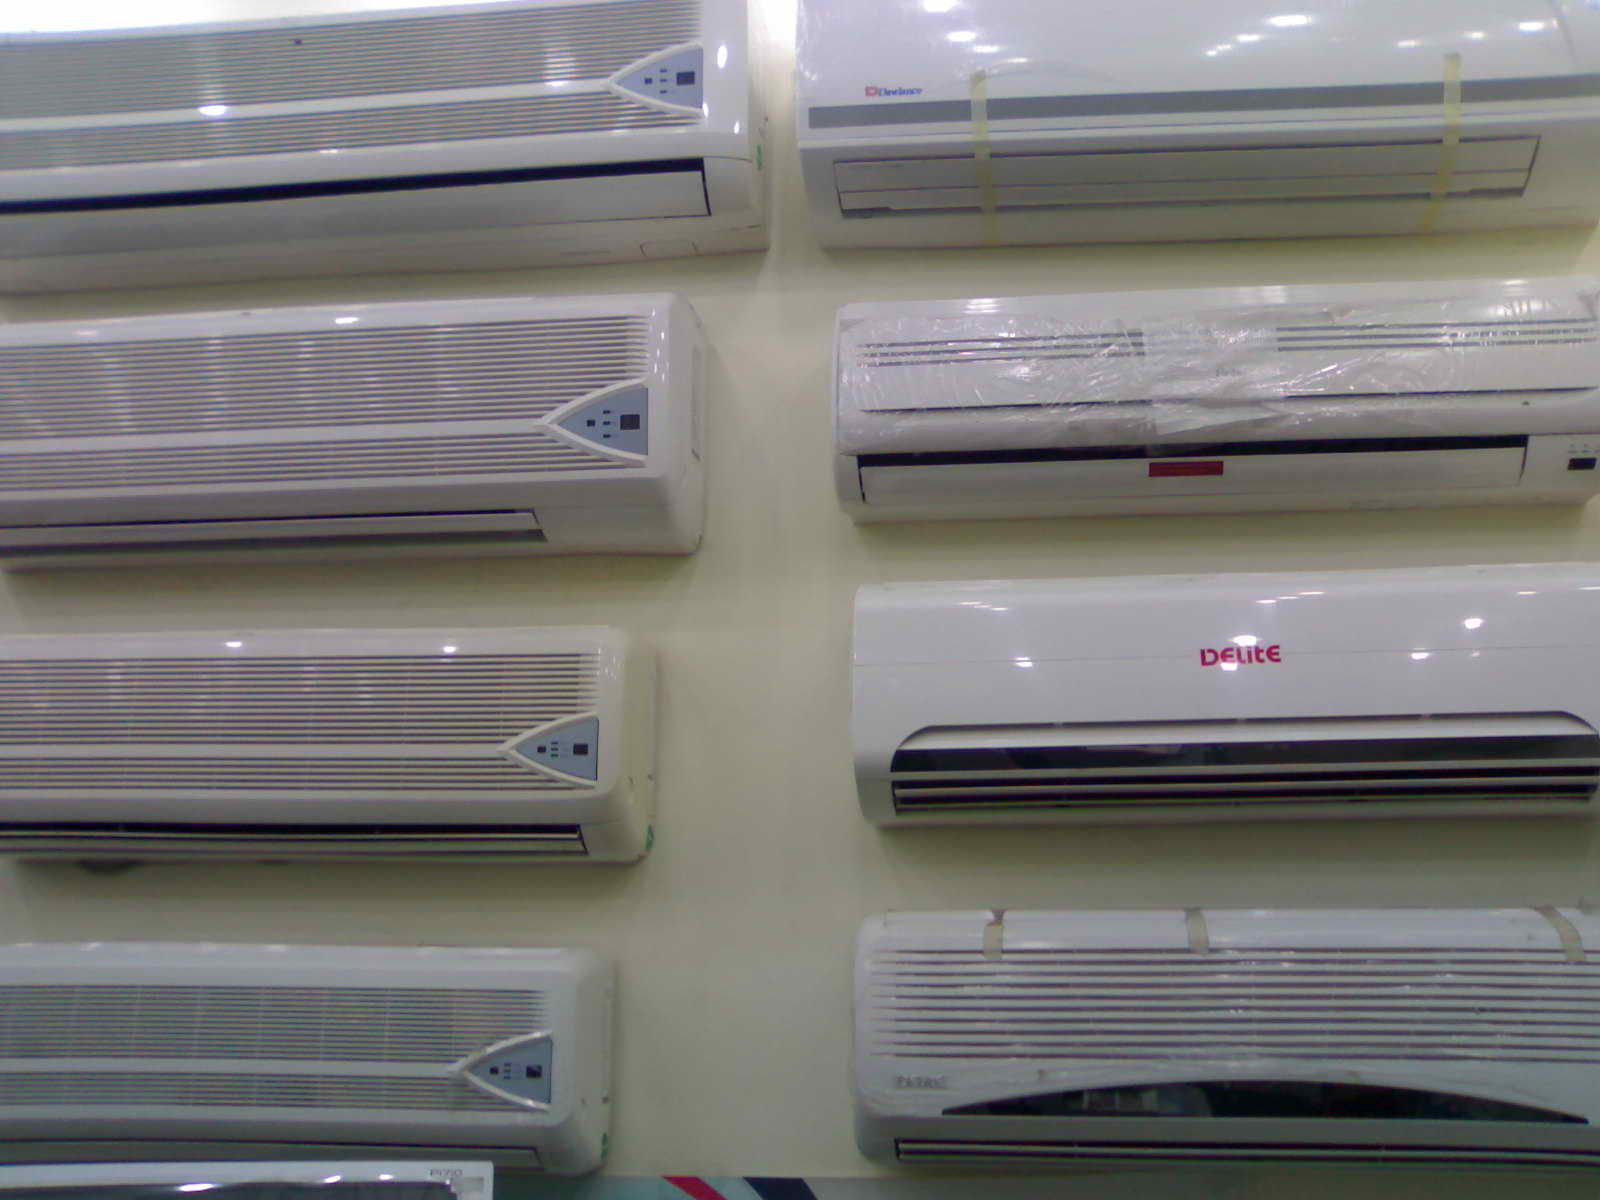 Air Conditioner Split Wall Mounted - Buy Air Conditioner Product on  Alibaba com